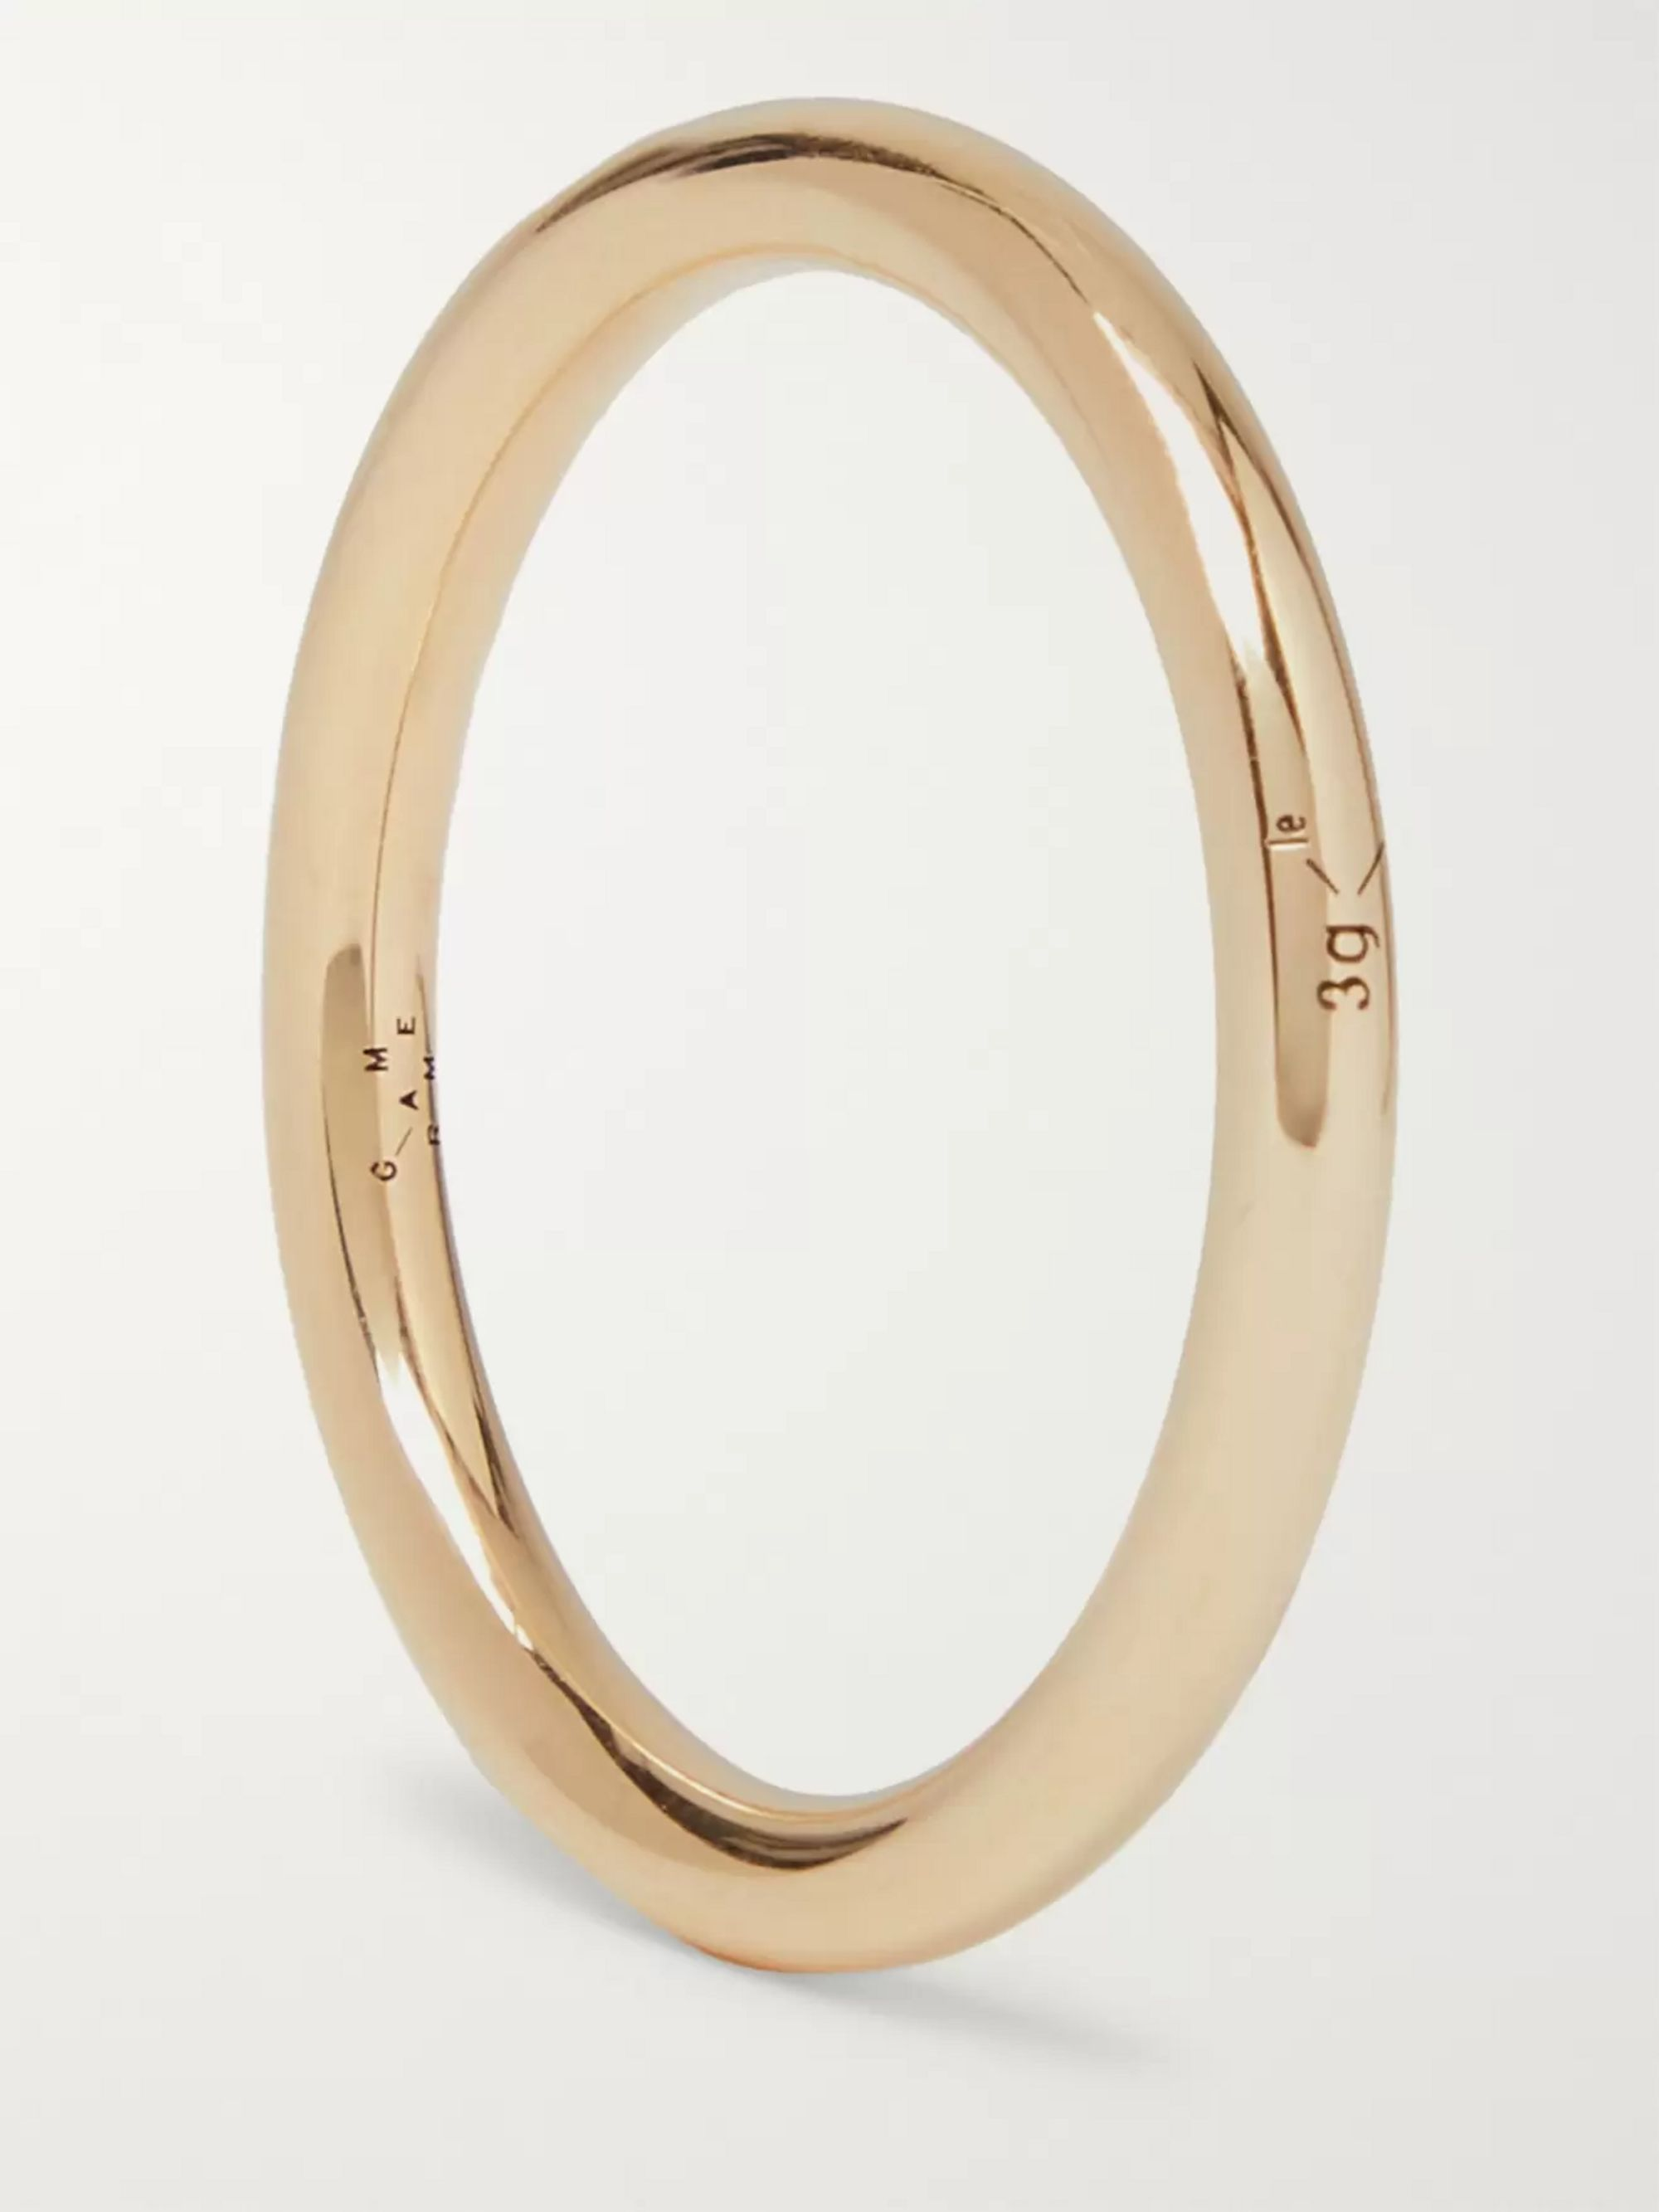 Le Gramme Le 3 Polished 18-Karat Gold Ring